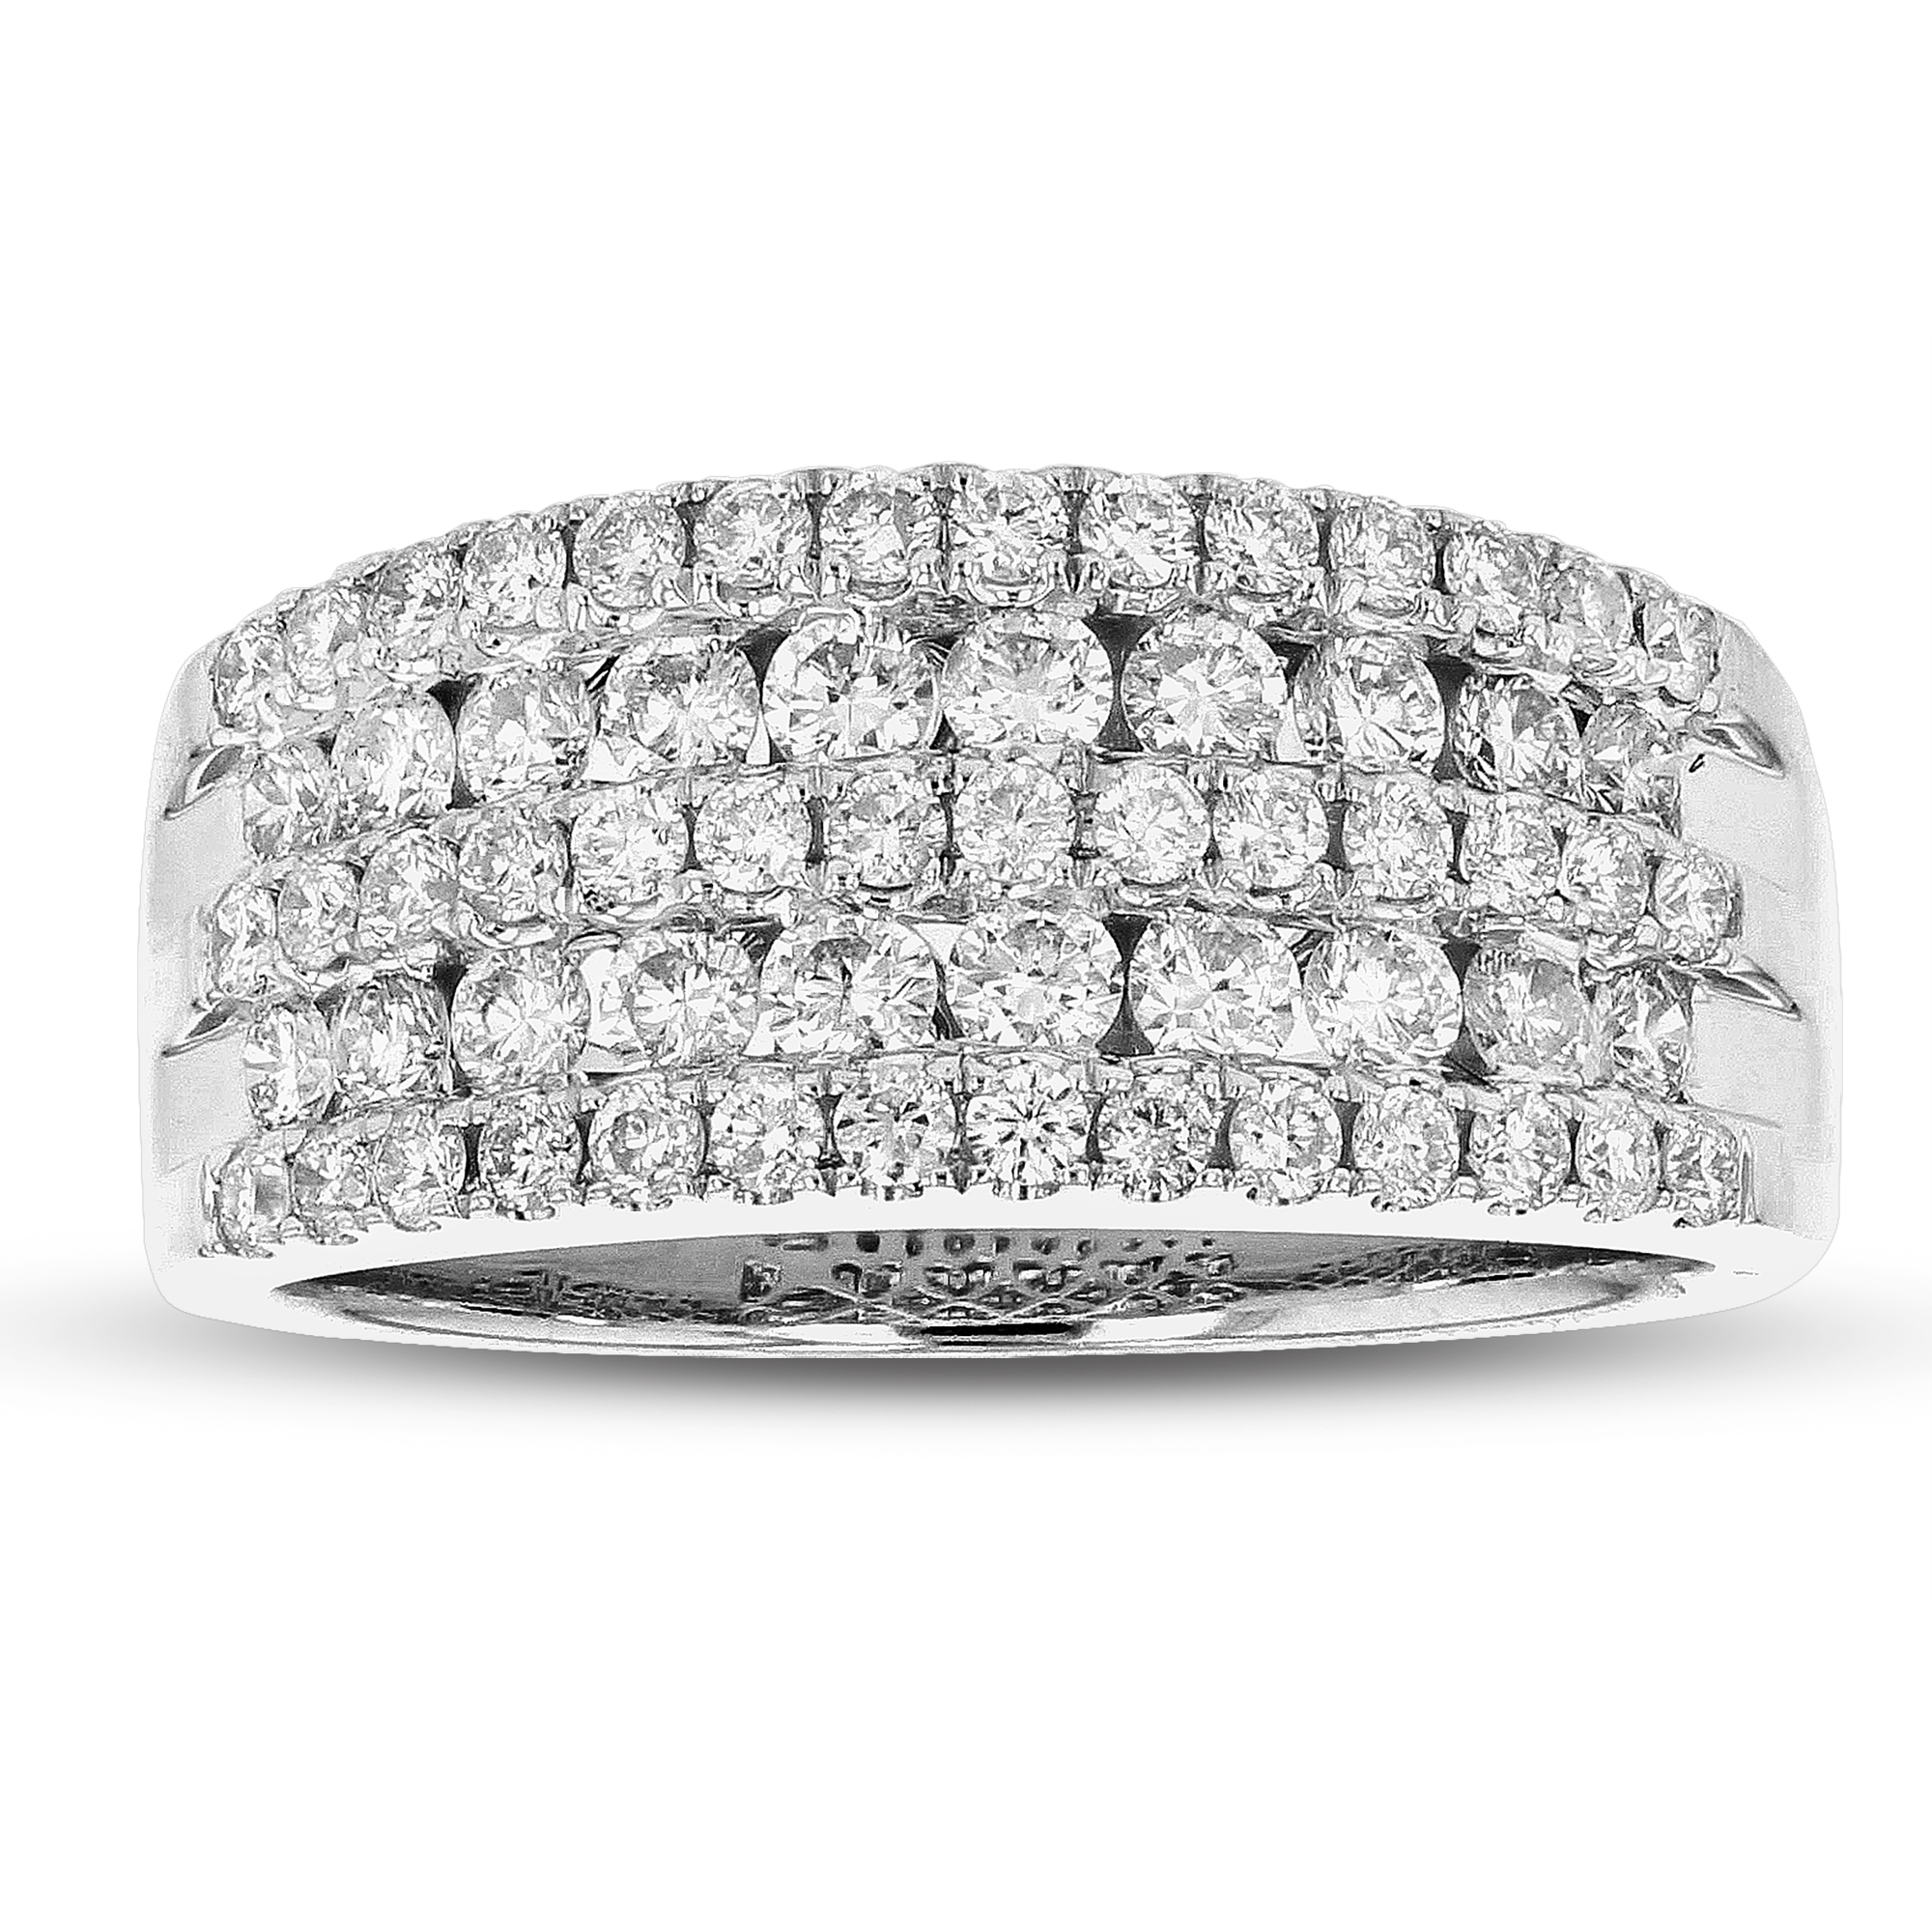 View 1.11ctw Diamond Fashion band in 18k White Gold